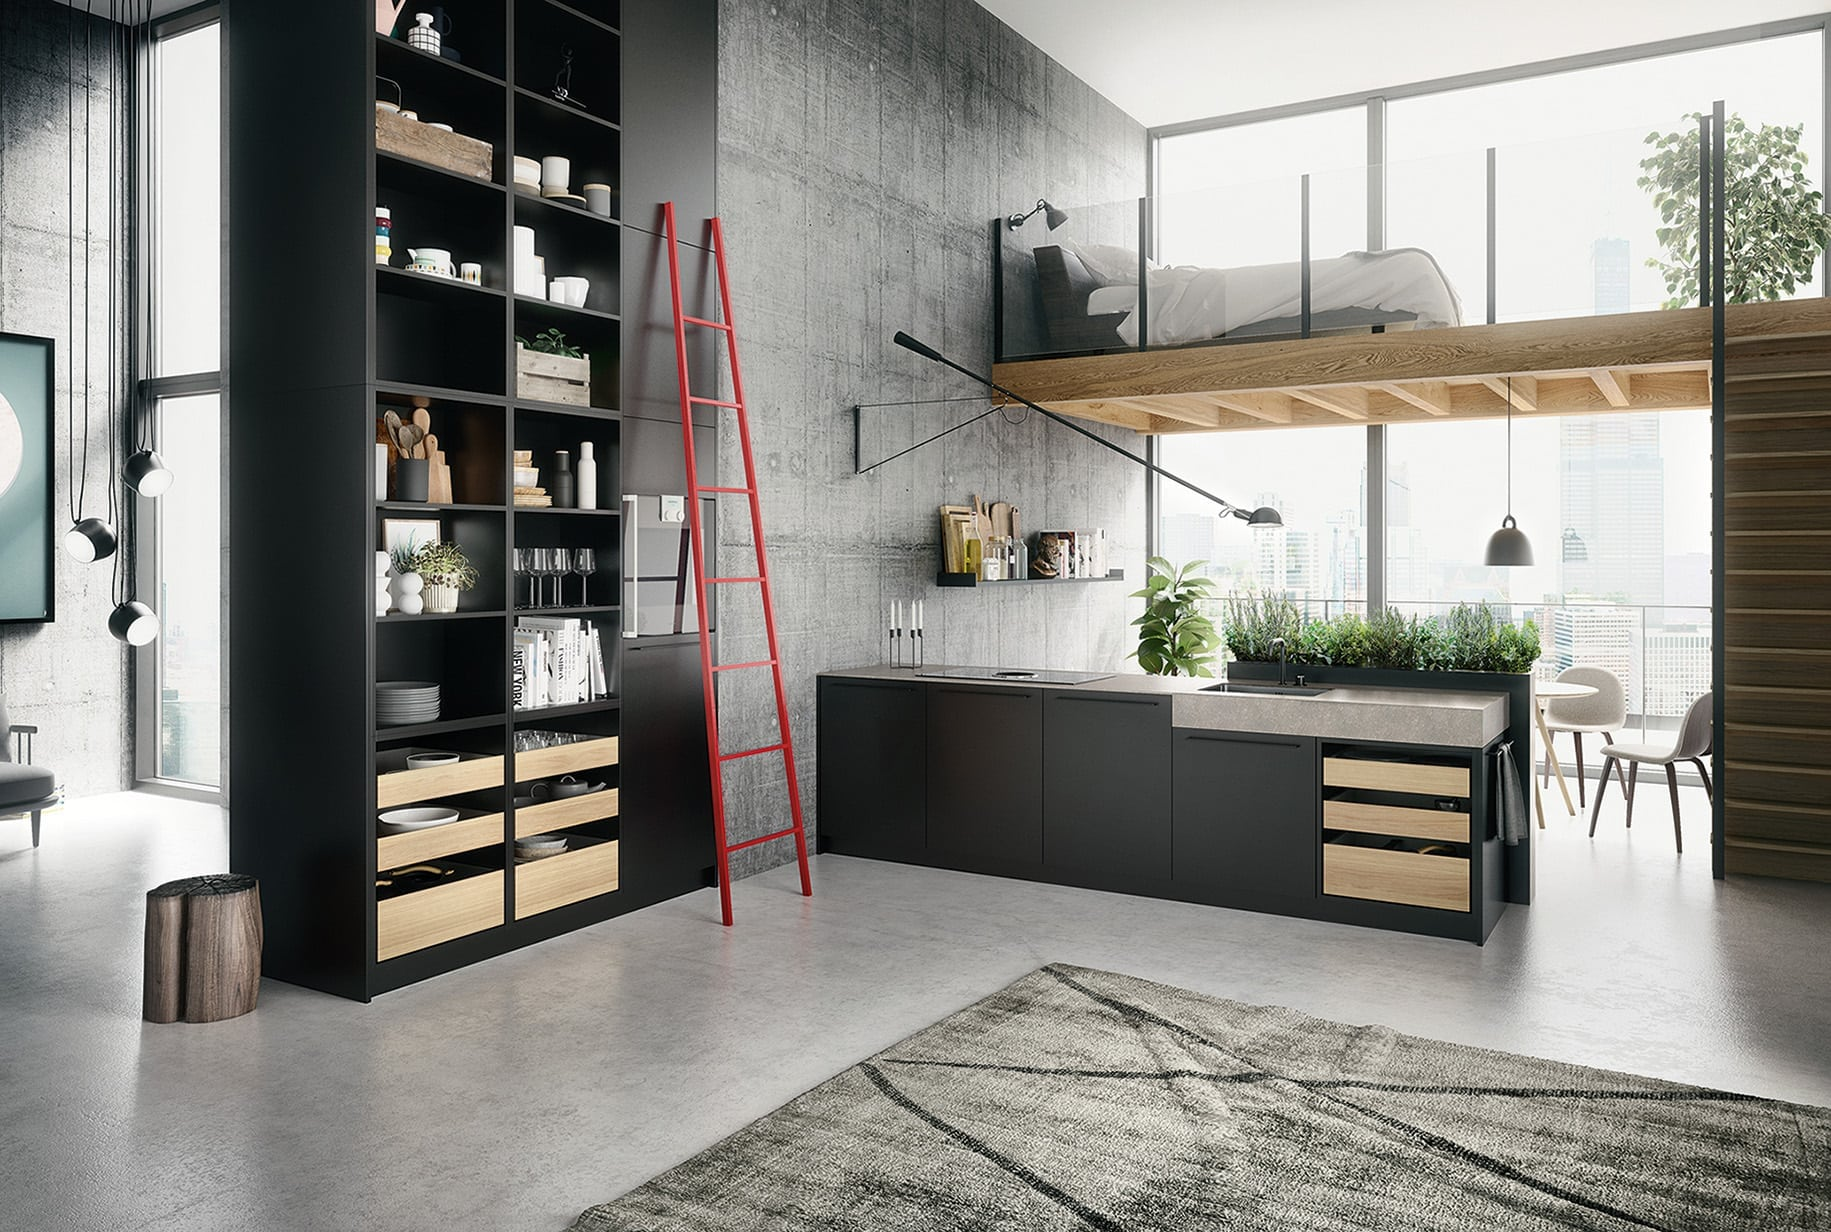 siematic urban kitchen with wooden drawers and red ladder